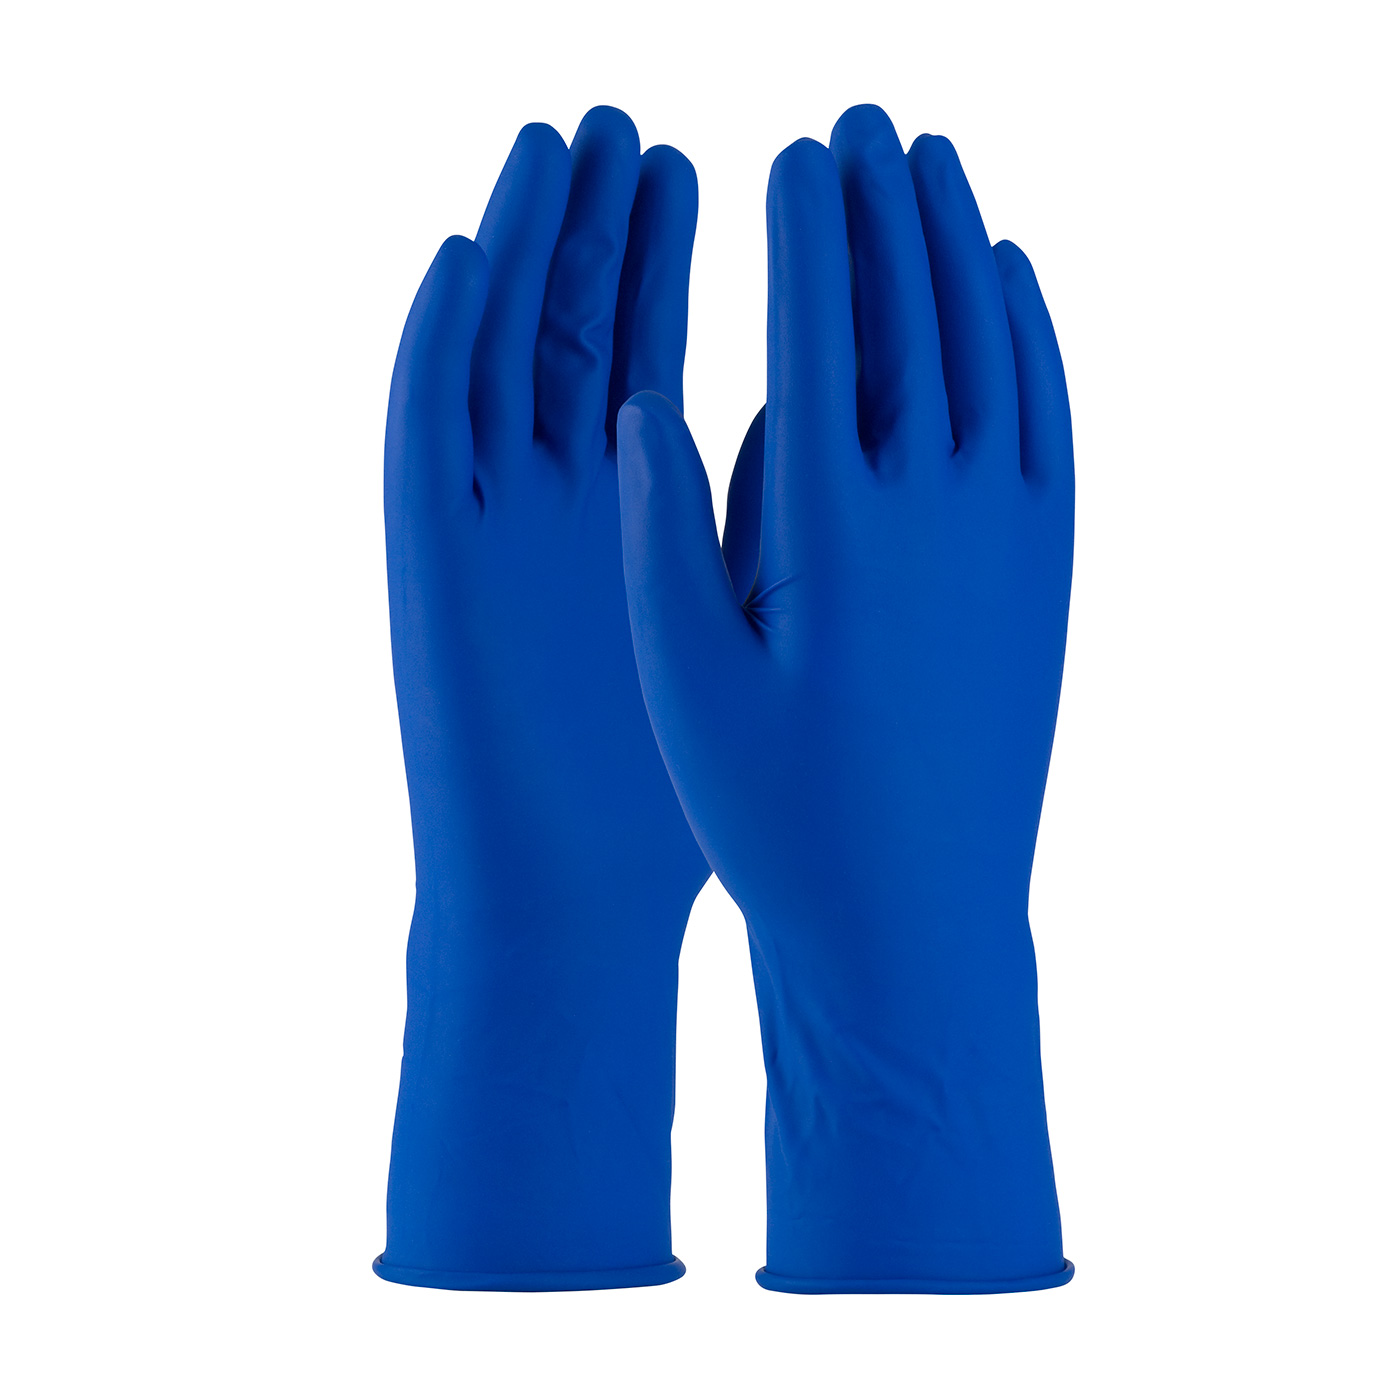 62-327PF PIP® Ambi-Thix™ Hi-Risk Extra Protection 13 mil Disposable Powder-Free Latex Exam Gloves